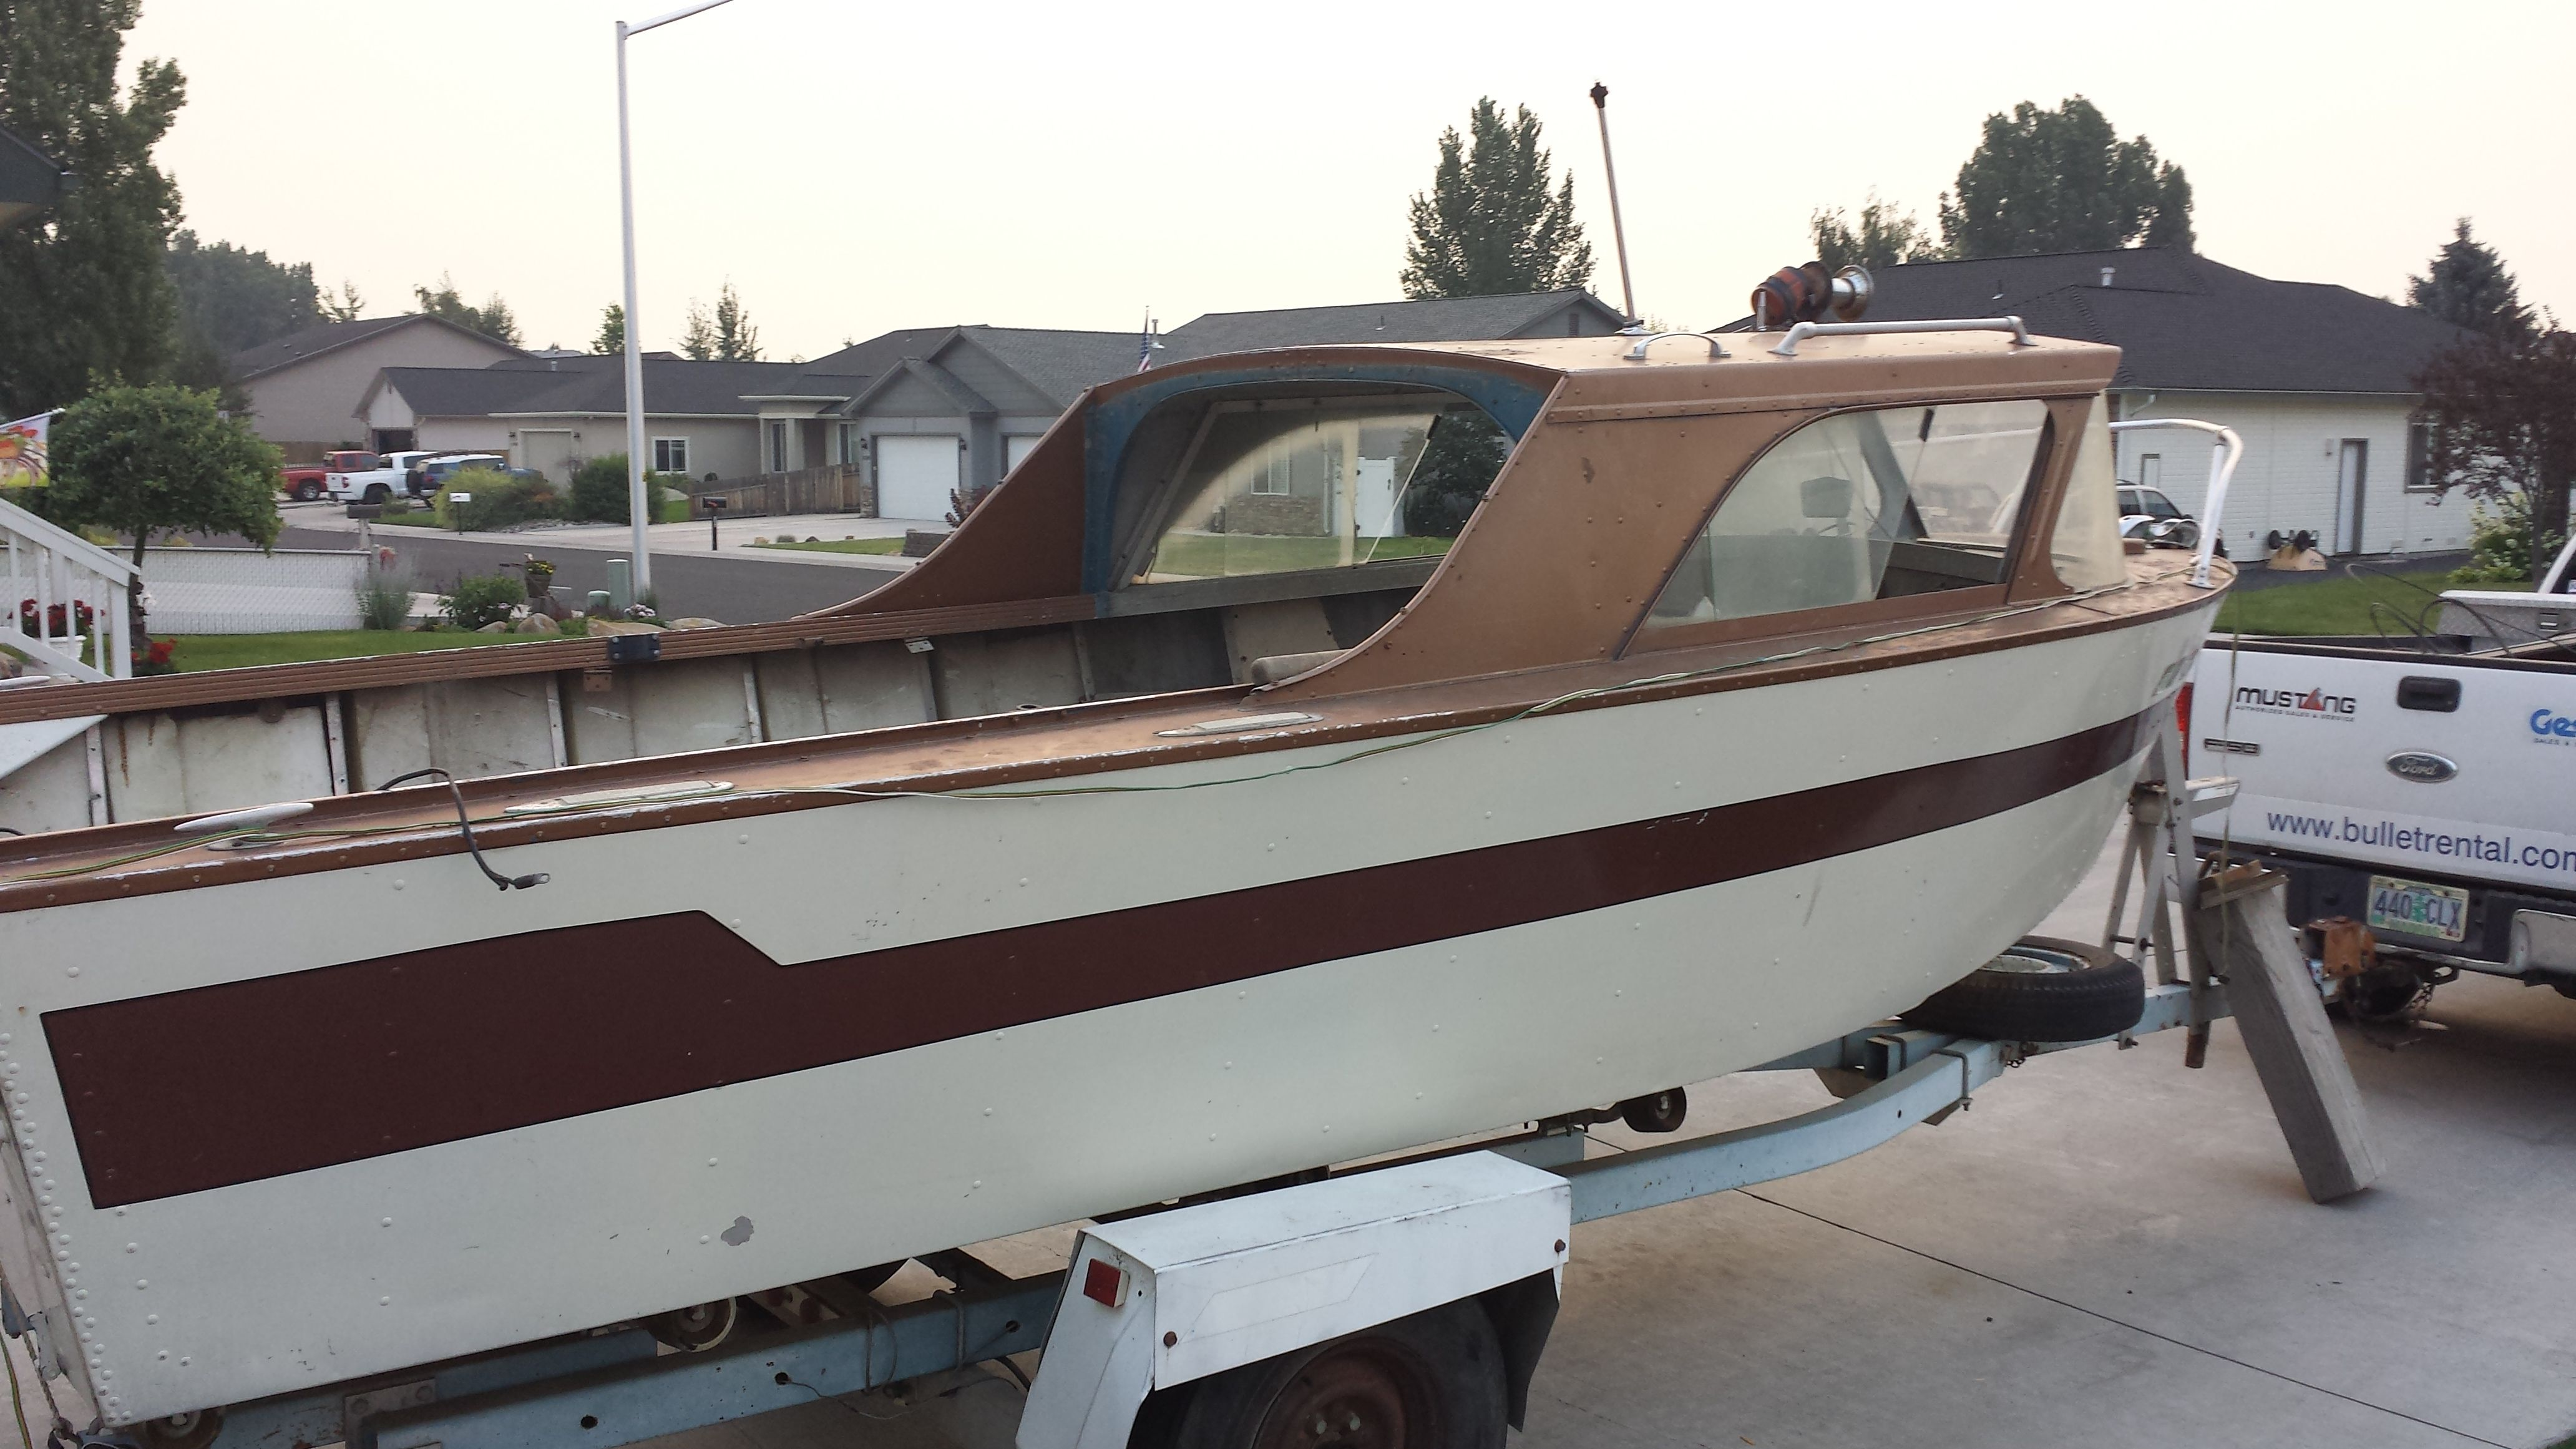 Pic Lone Star Restore My Lone Star El Dorado Boat Pinterest - Blue fin boat decalsblue fin sportsman need some advice pageiboats